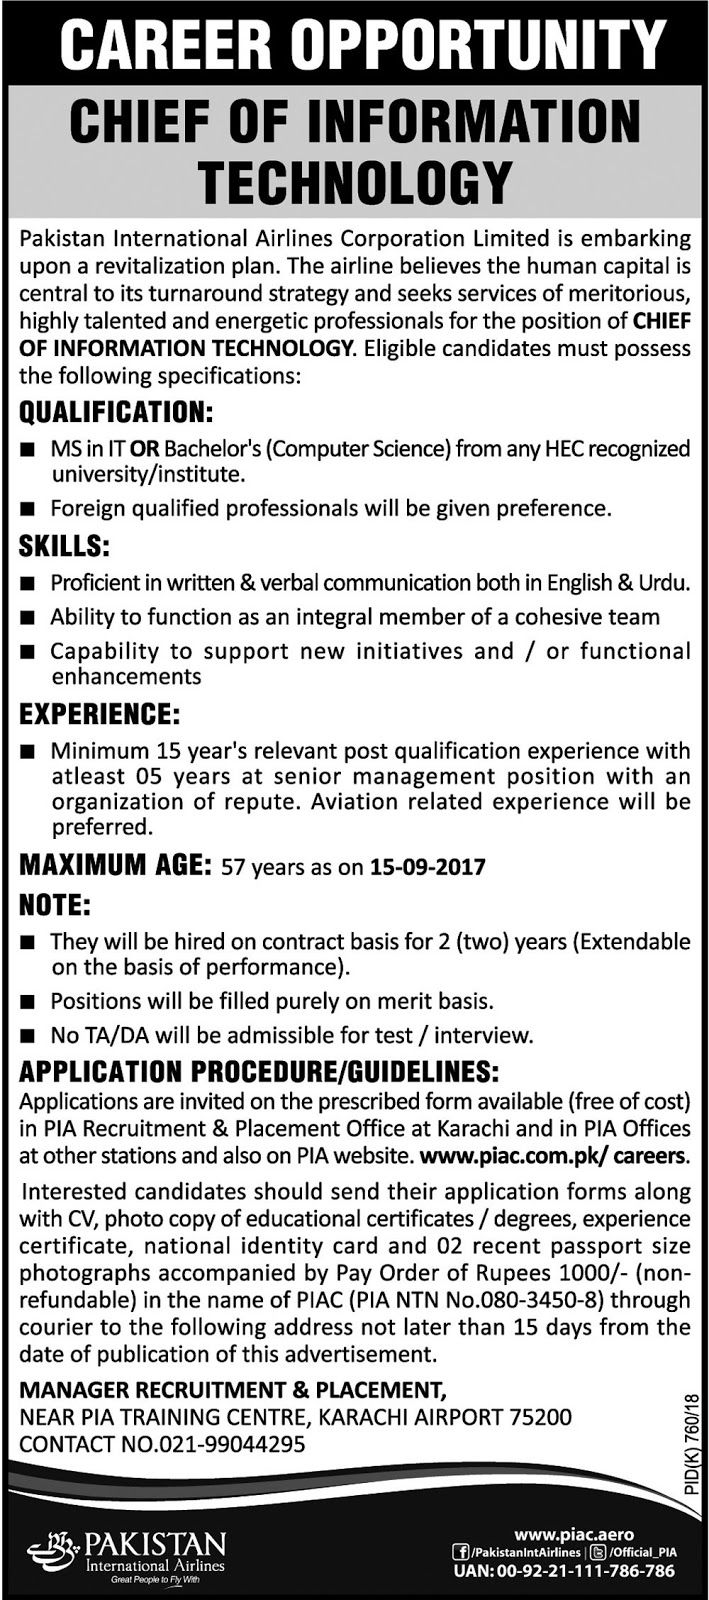 Career Opportunity in PIA Pakistan International Airlines Corporation Limited http://ift.tt/2etJnOE   Pakistan International Airlines Corporation Limited is embarking upon a revitalization plan. The airline believes the human capital is central to its turnaround strategy and seeks services of meritorious highly talented and energetic professionals for the position of  CHIEF OF INFORMATION TECHNOLOGY.  Last Date:  15 Sept   2017  Location:  Karachi  Posted   on:  01 Sept   2017  Category…